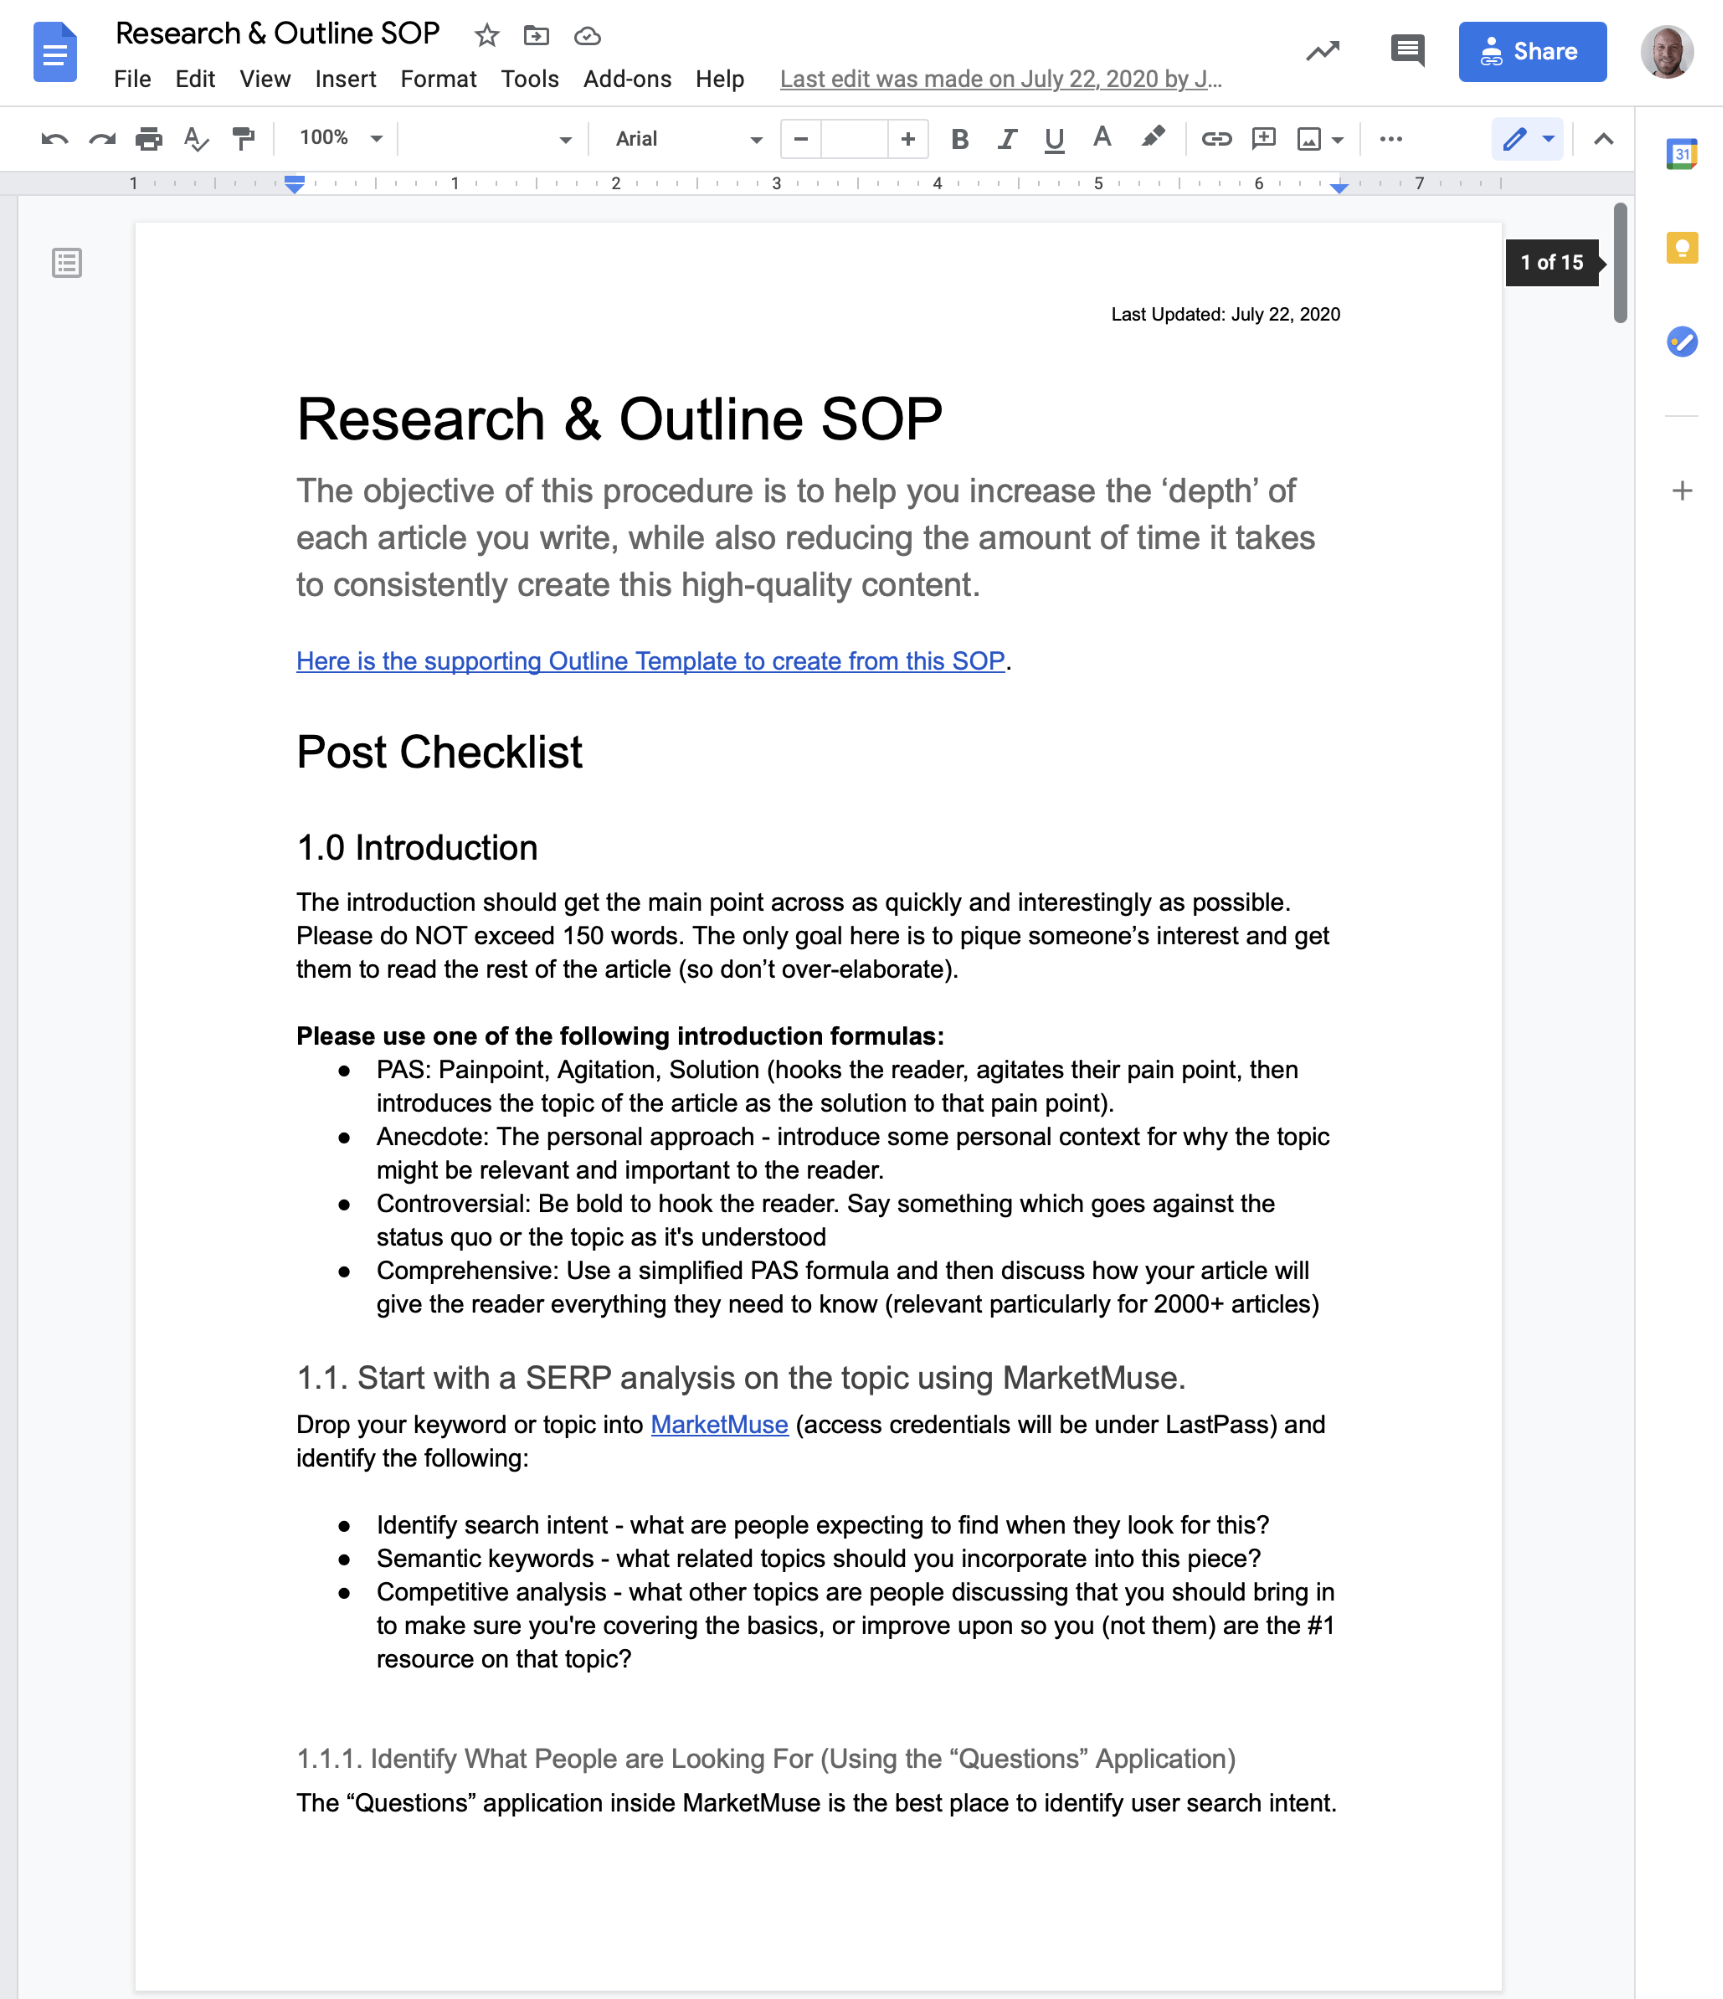 research and outline SOP